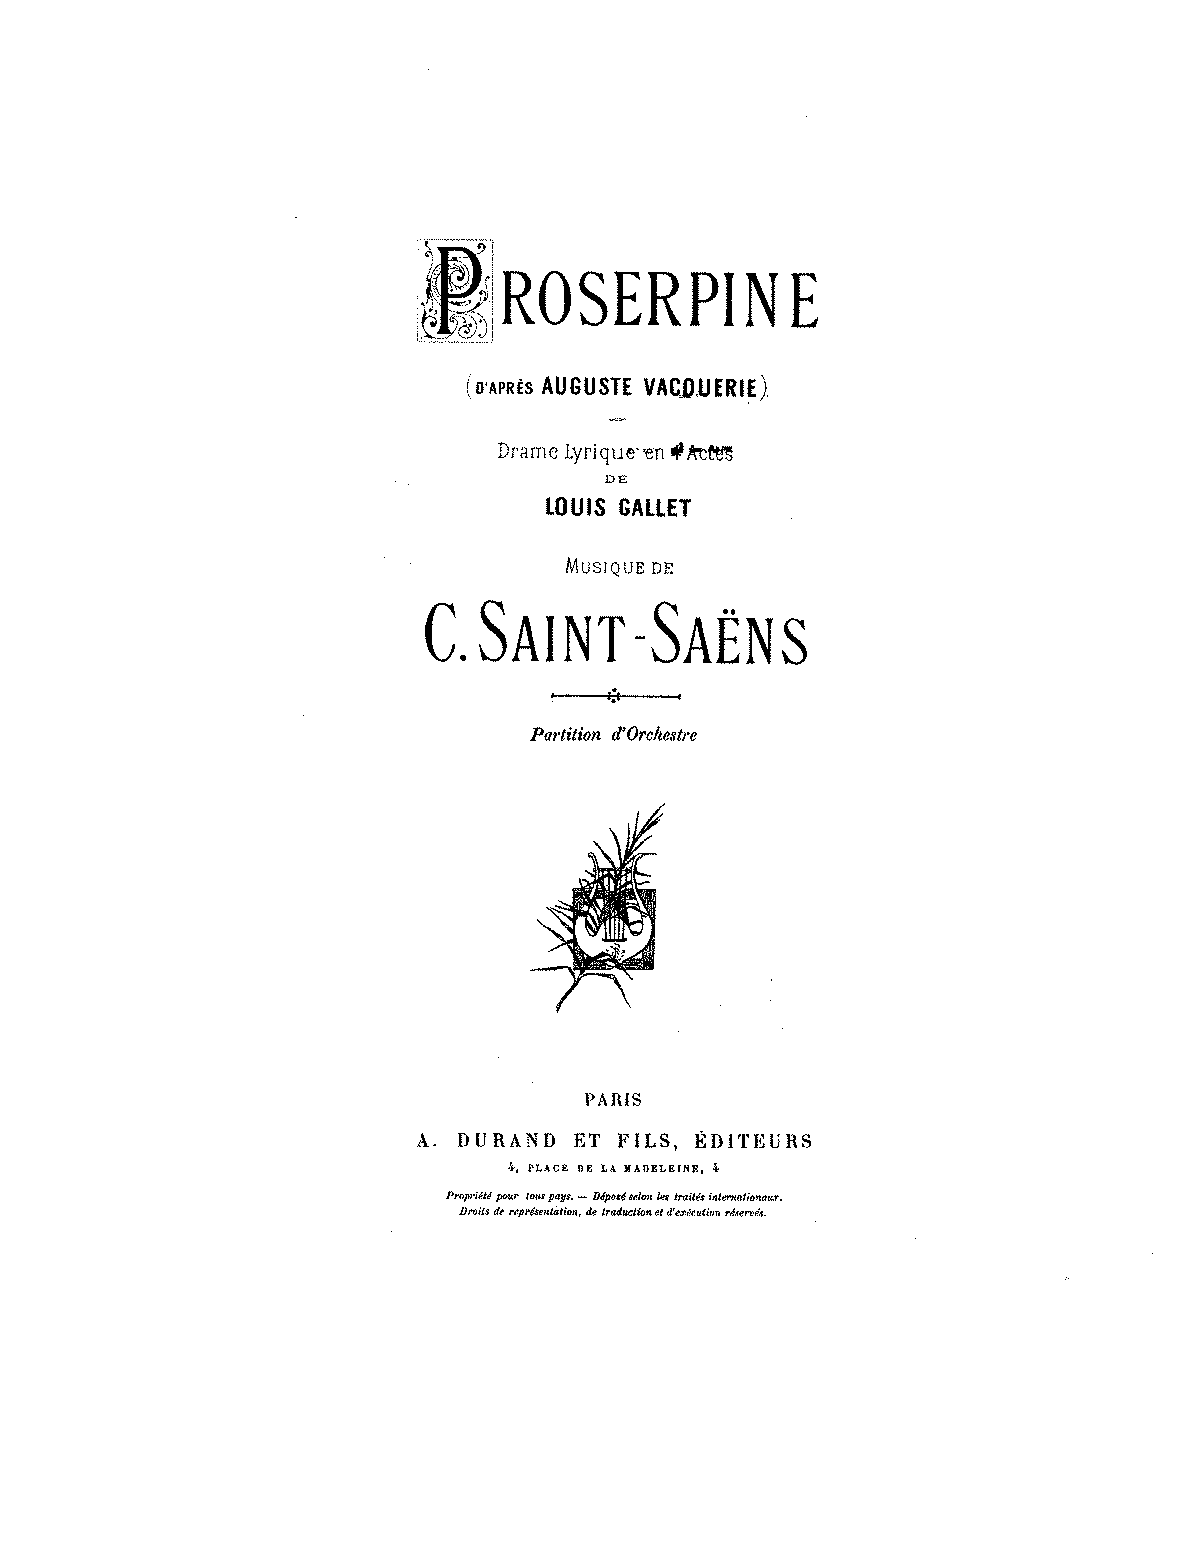 PMLP81374-Saint-Saens - Proserpine - 1 - Cover - Index - Nomenclature des Instruments - Act I.pdf